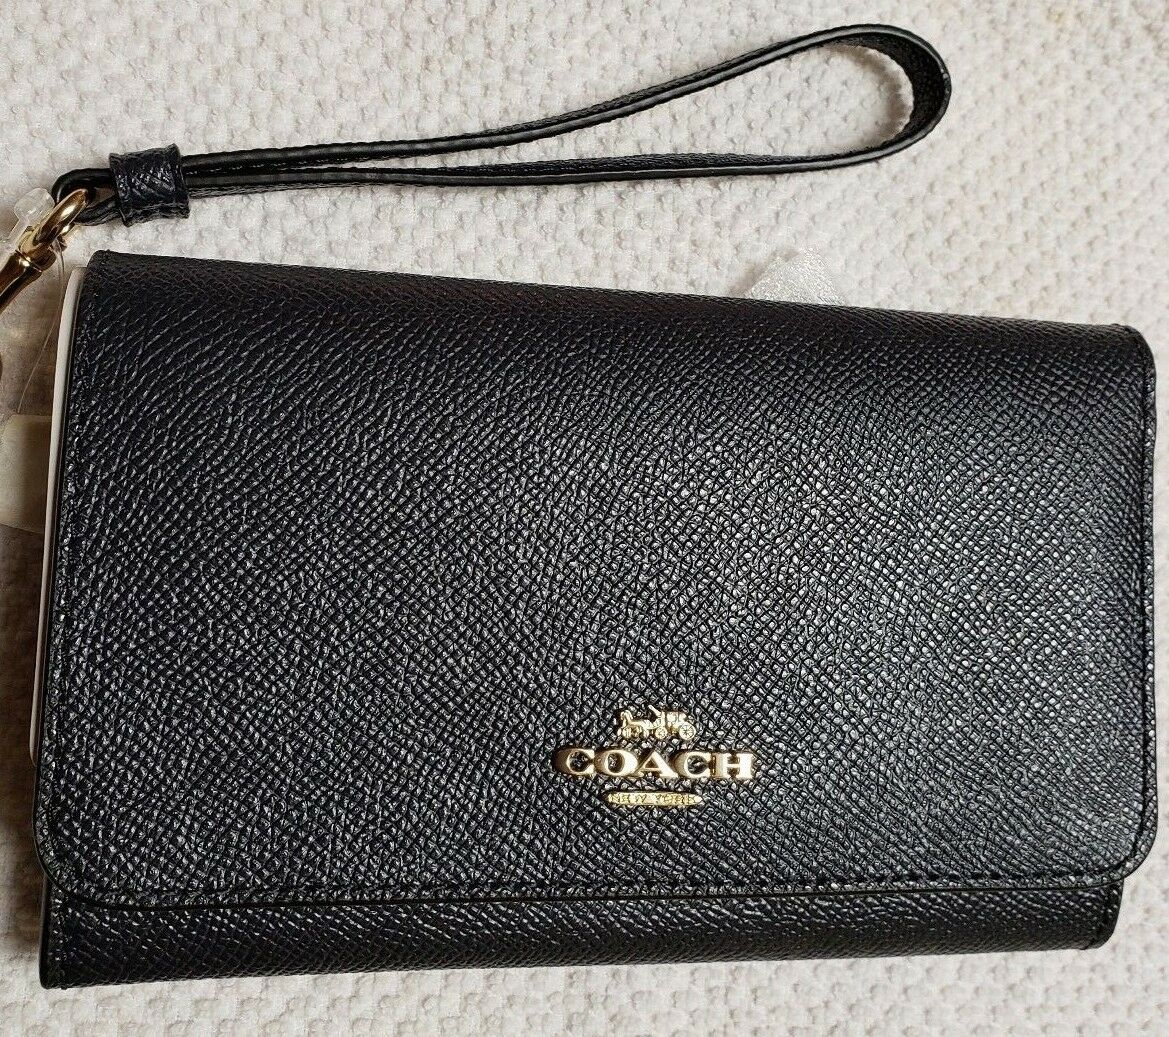 Coach Flap Phone Wallet F30205 Midnight Blue with Wrist Strap New with Tags NWT